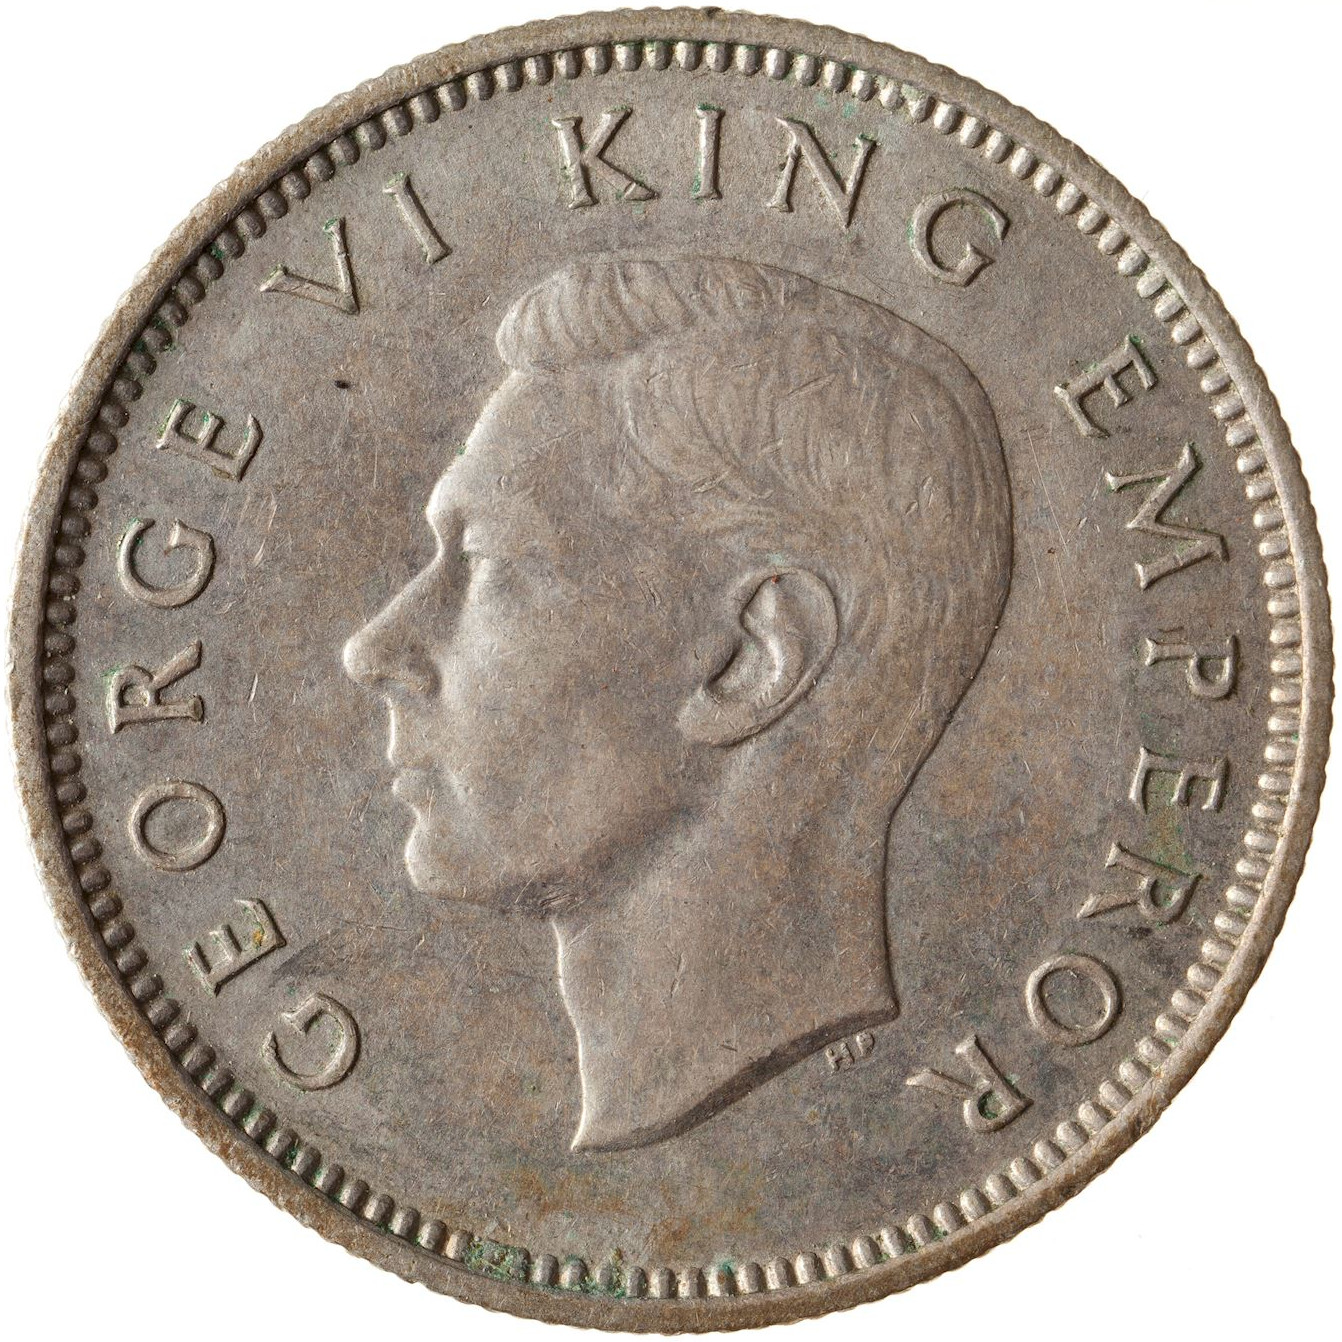 Sixpence 1944: Photo Coin - 6 Pence, New Zealand, 1944